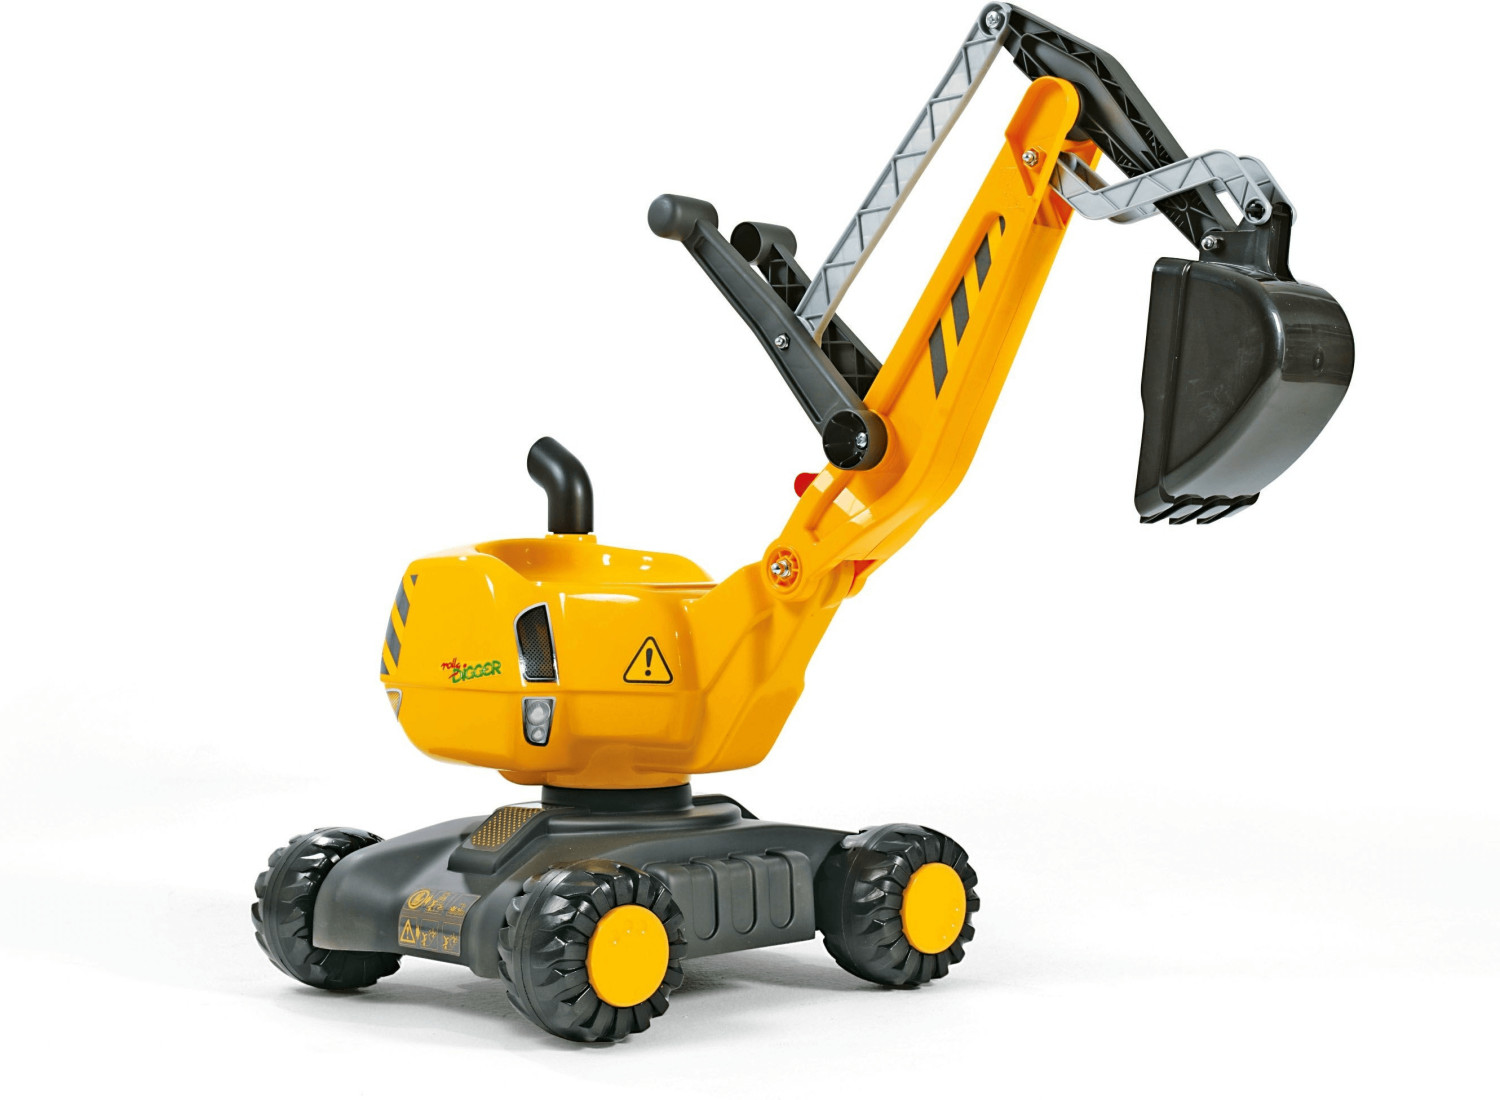 Image of Rolly Toys rollyDigger Ruspa scavatrice con ruote